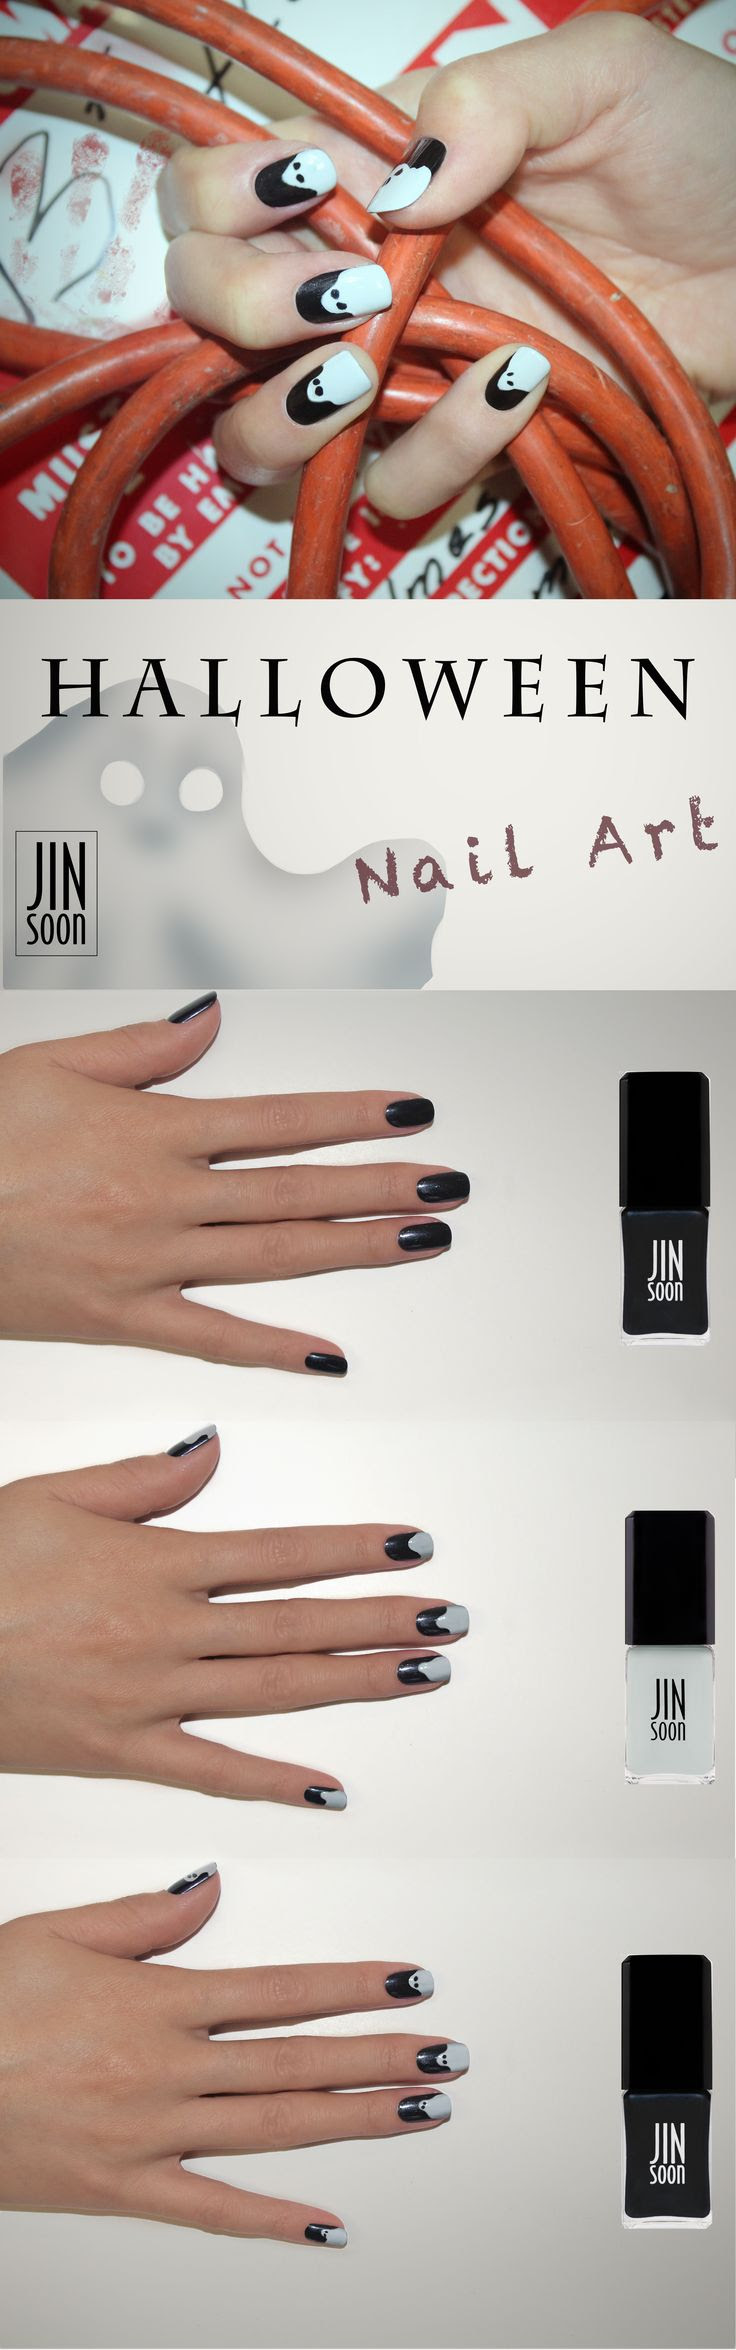 JINsoon #Halloween 'Ghostly Horro' nail inspo. Get the look:  Preparation Step: Apply a coat of JINsoon Power Coat.  Step 1: Apply JINsoon Nocturne on each nail.  Step 2: At the tips of the nail draw ghostly shapes with JINsoon Kookie White (the kind of ghost is up to your imagination) Step 3: With the very tip of the brush, dot JINsoon Nocturne where you would like the eyes to be.  Step 5: To finish it off apply a coat of JINsoon Top Gloss.